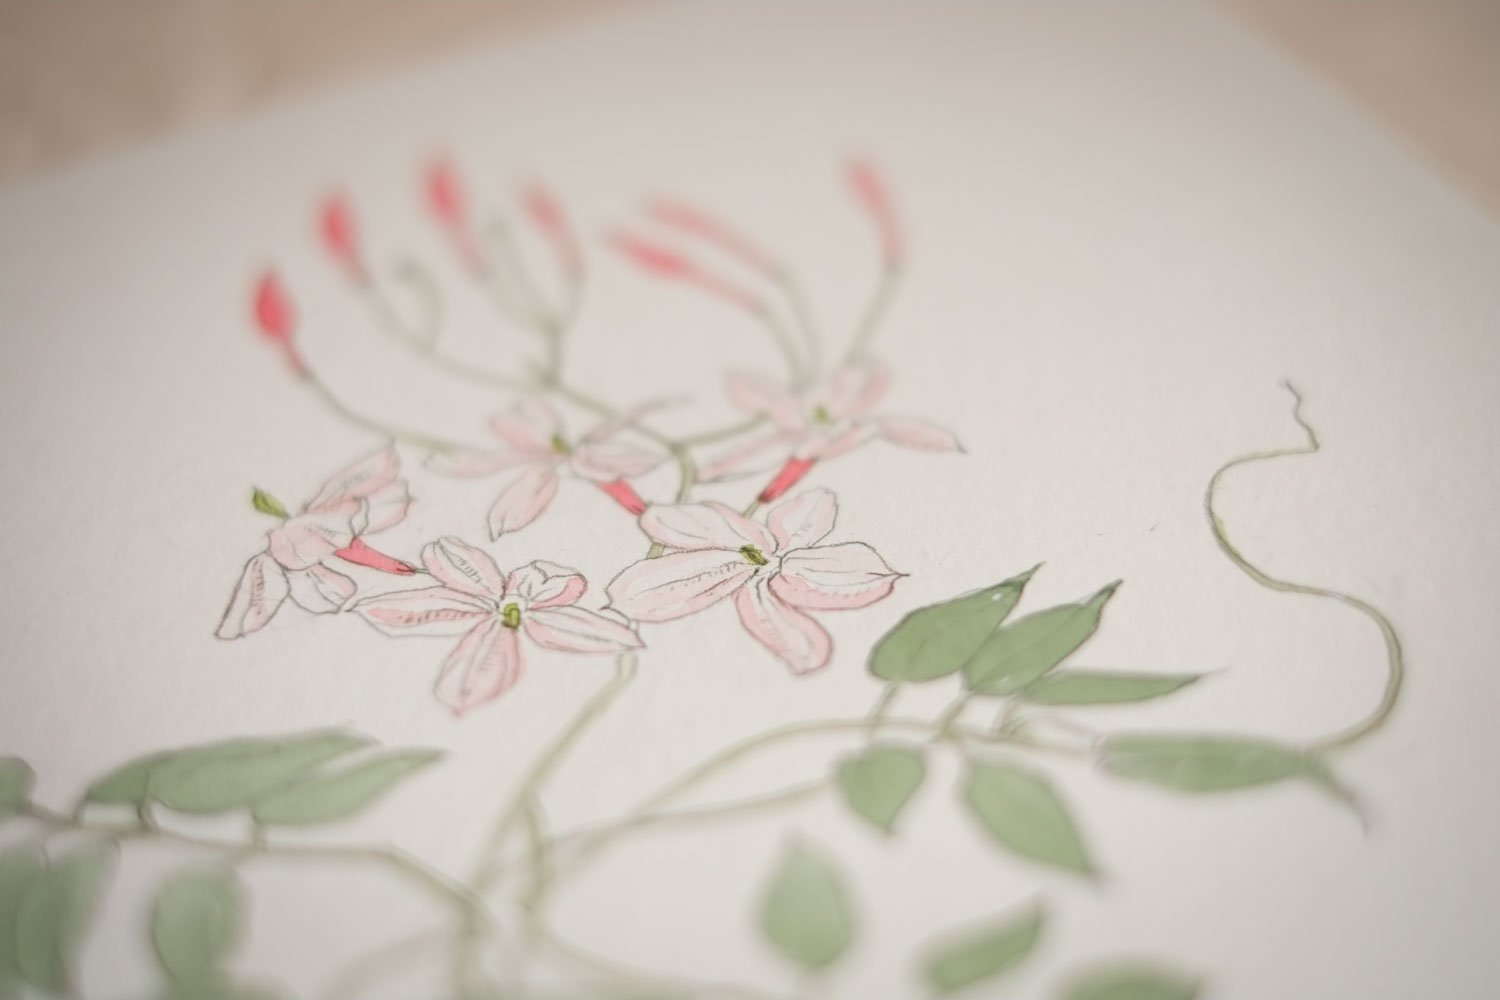 Erin Ellis_botanical flowering vines watercolor drawings-12-2.jpg